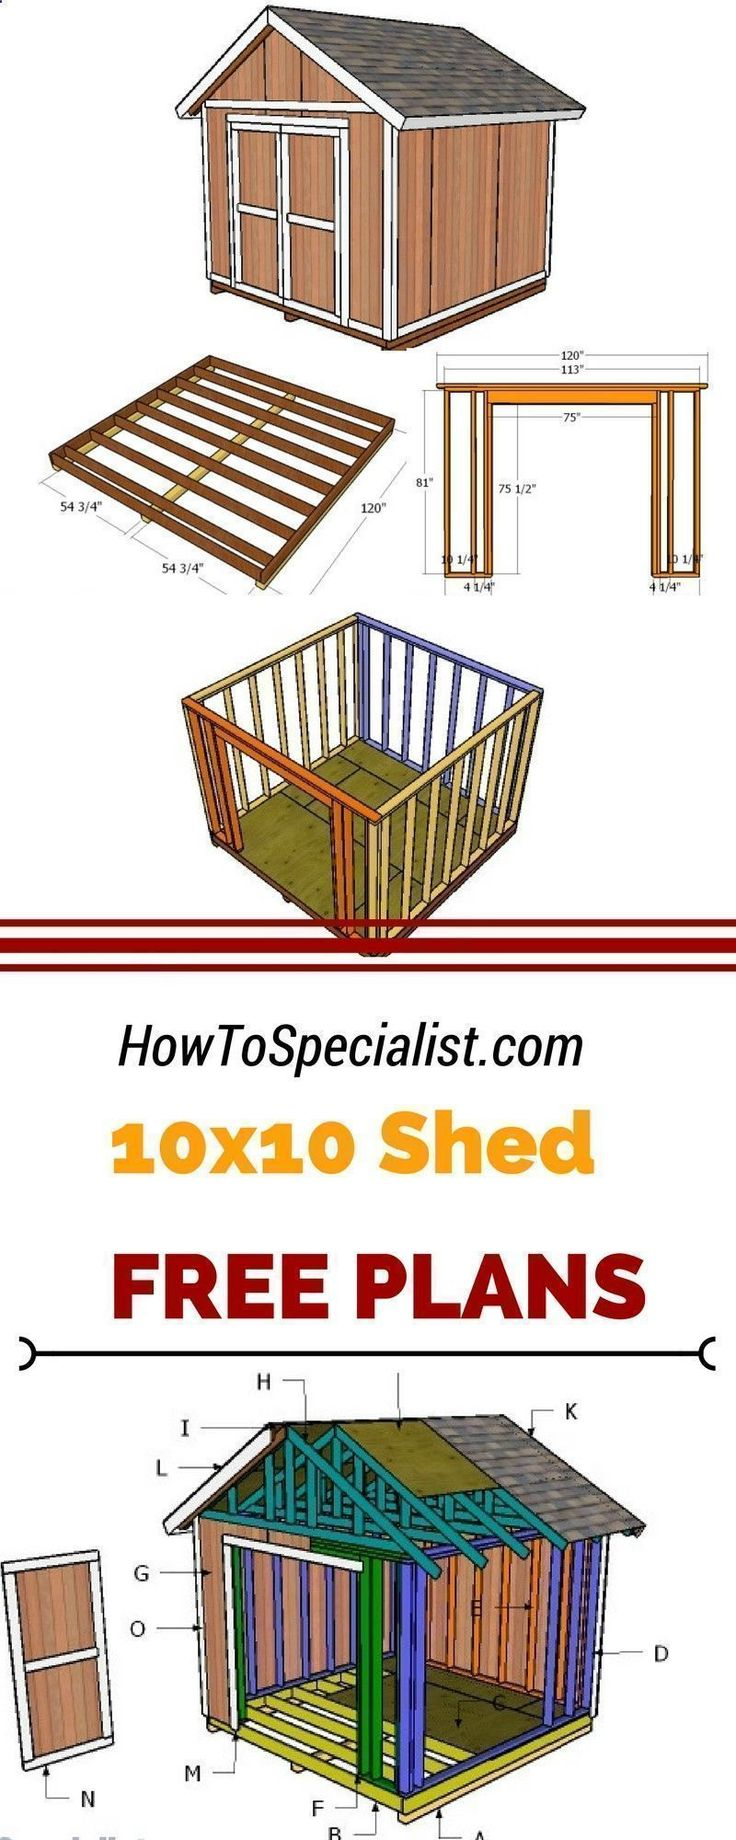 Plans of Woodworking Diy Projects - If you need more storage space in the backyard, you should check out 10x10 shed plans. Learn how to build a small garden shed using my step by step plans and instructions. howtospecialist.com #diy #shed Get A Lifetime Of Project Ideas & Inspiration! #Choosingashedplan #gardenplanningideashowtobuild #gardenshed #buildashed #shedideas #smallspacegardening